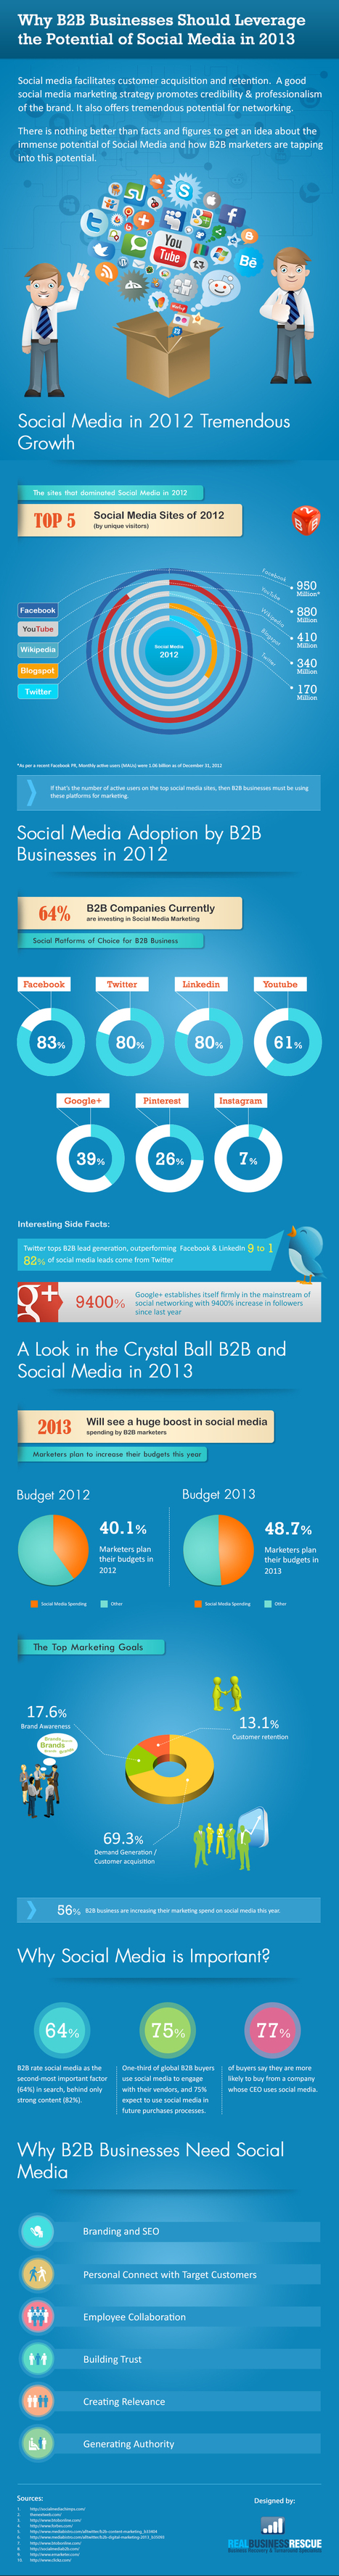 Why B2B Businesses Should Leverage the Potential of Social Media in 2013.jpg (960x7304 pixels) | Marketing & Webmarketing | Scoop.it